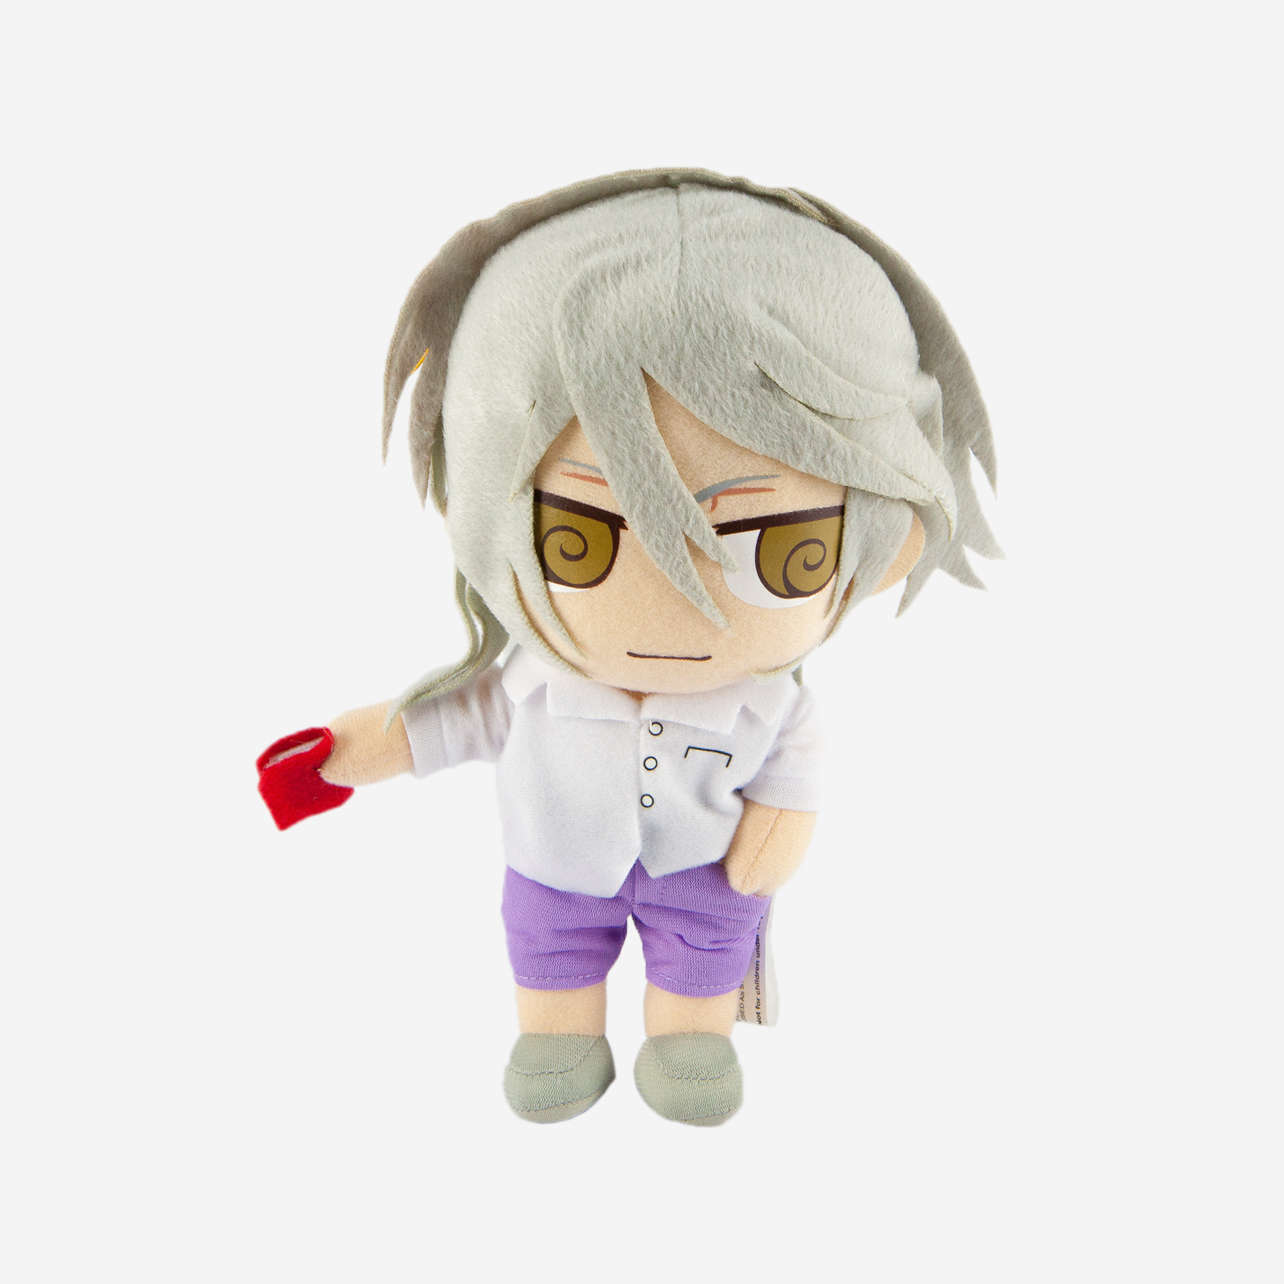 Makishima Plush 8'' Toys & Games